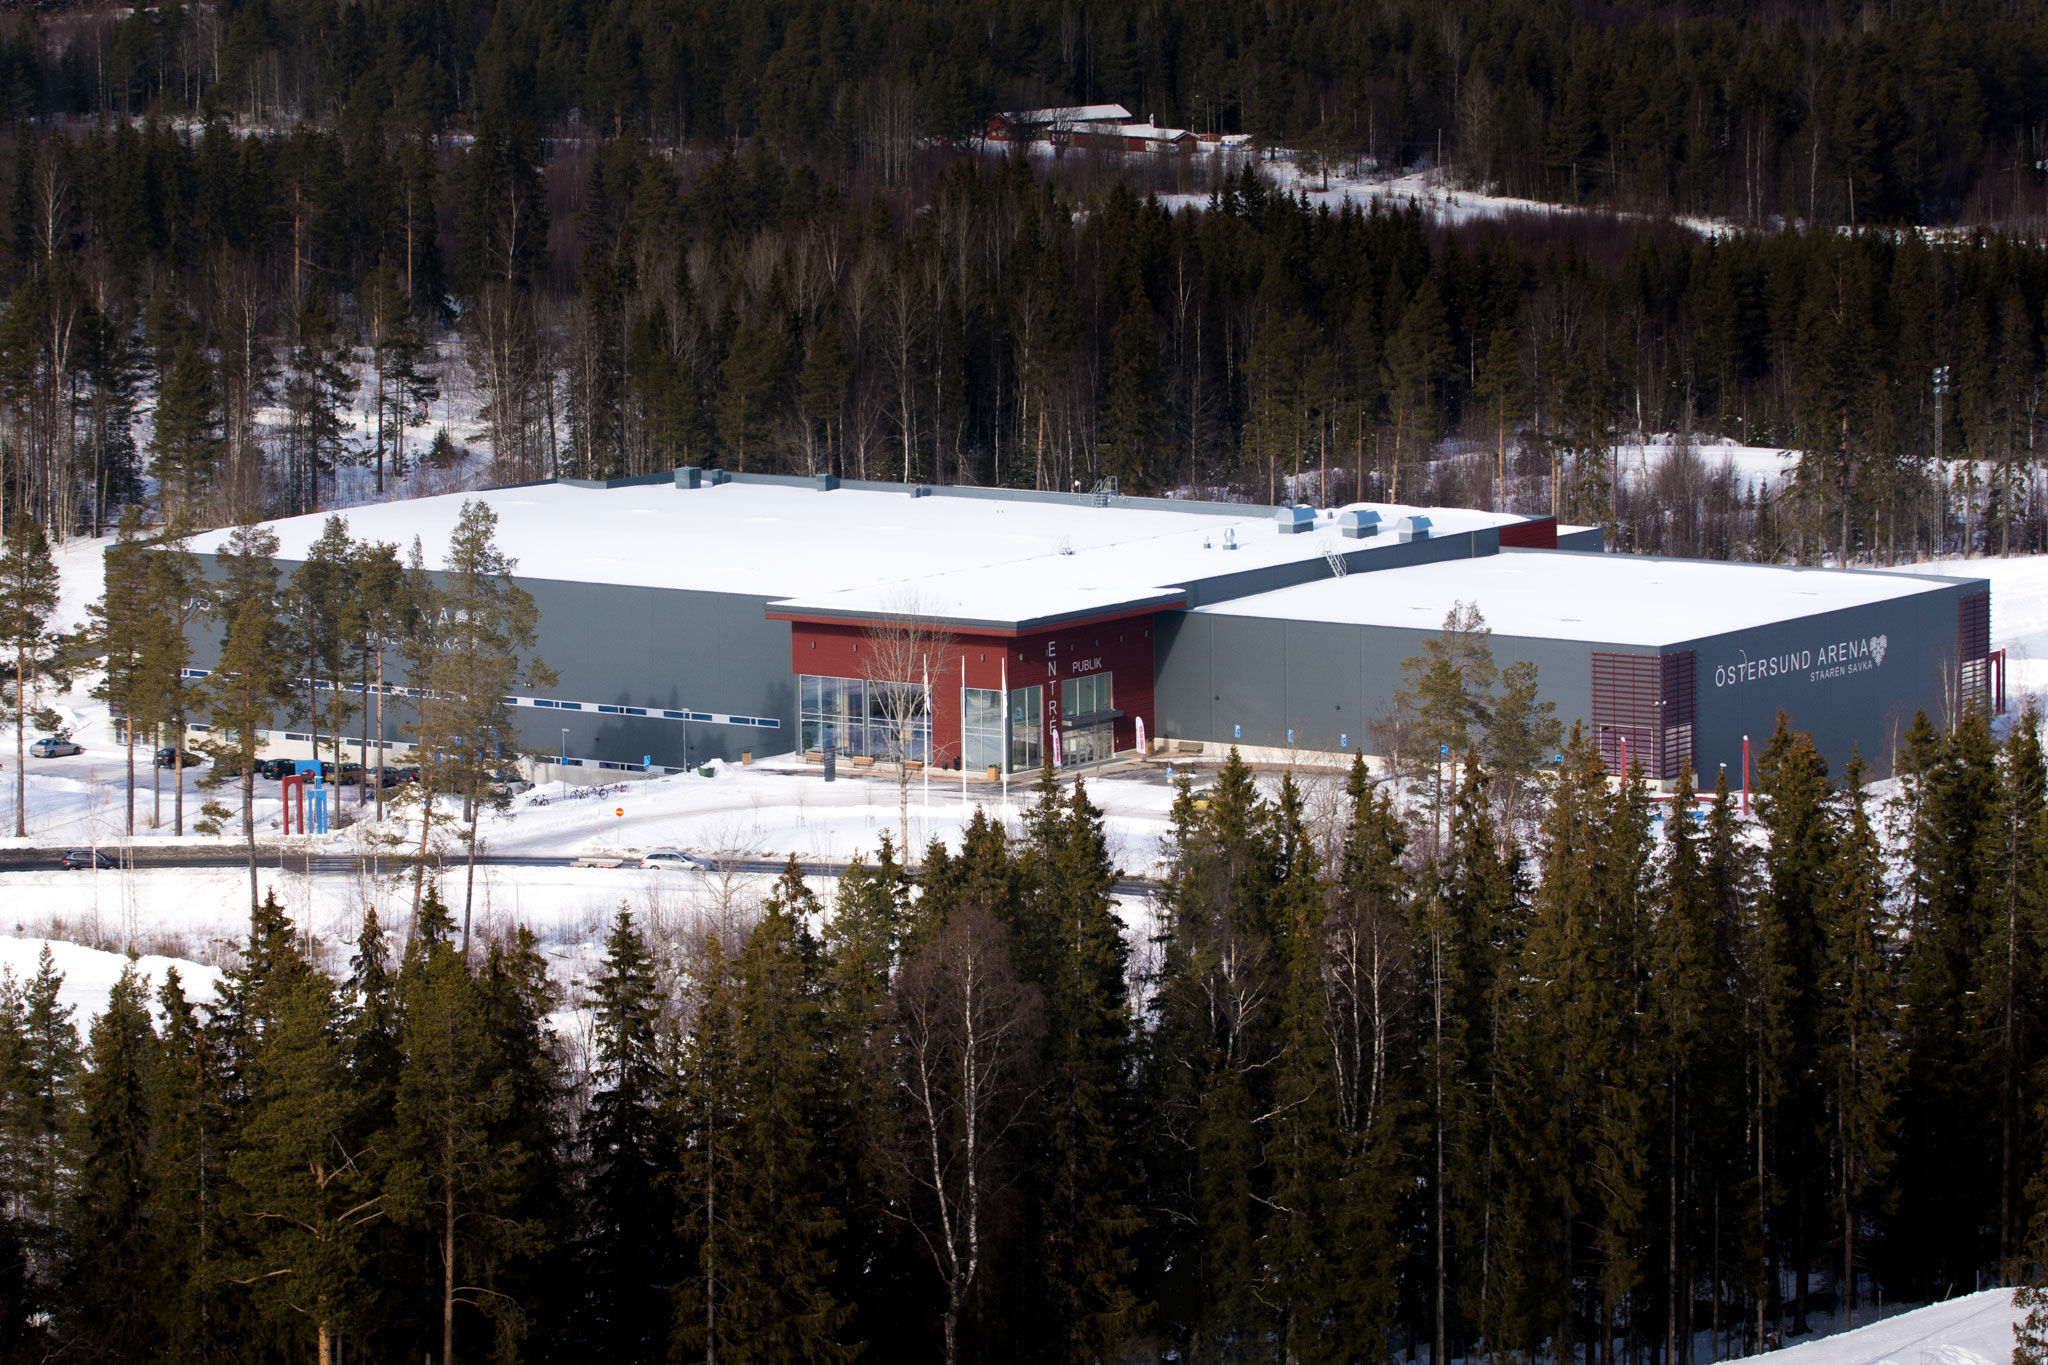 Östersund Arena, the venue of World Junior B Curling Championships 2017. © Jörgen Nilsson.